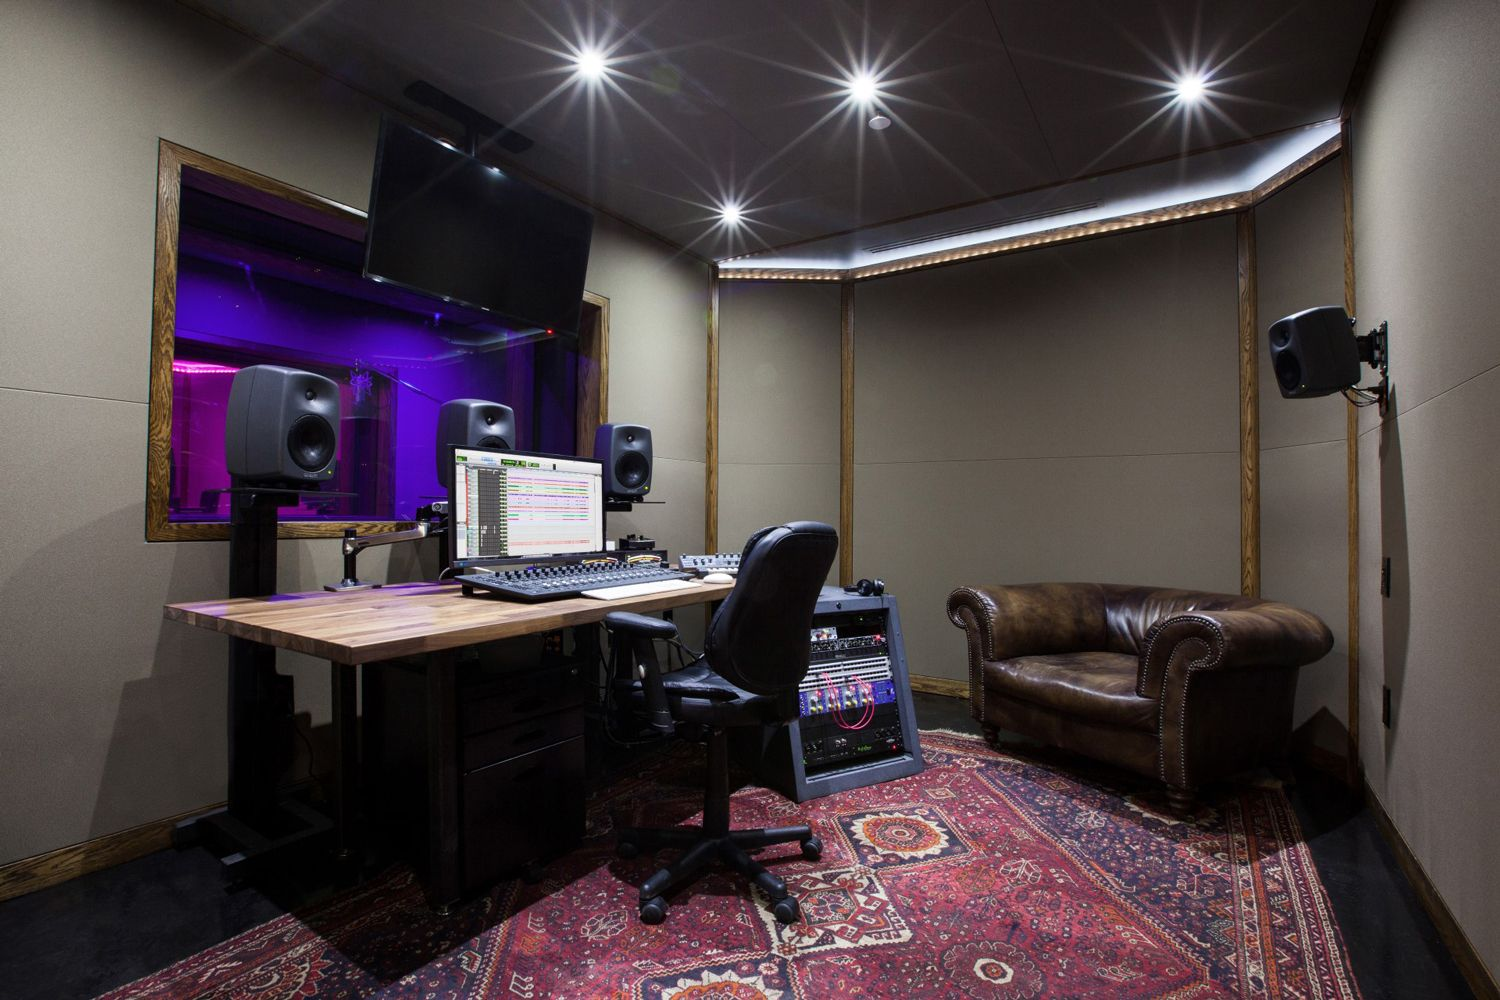 ACOUSTIC WALLS IN A RECORDING STUDIO